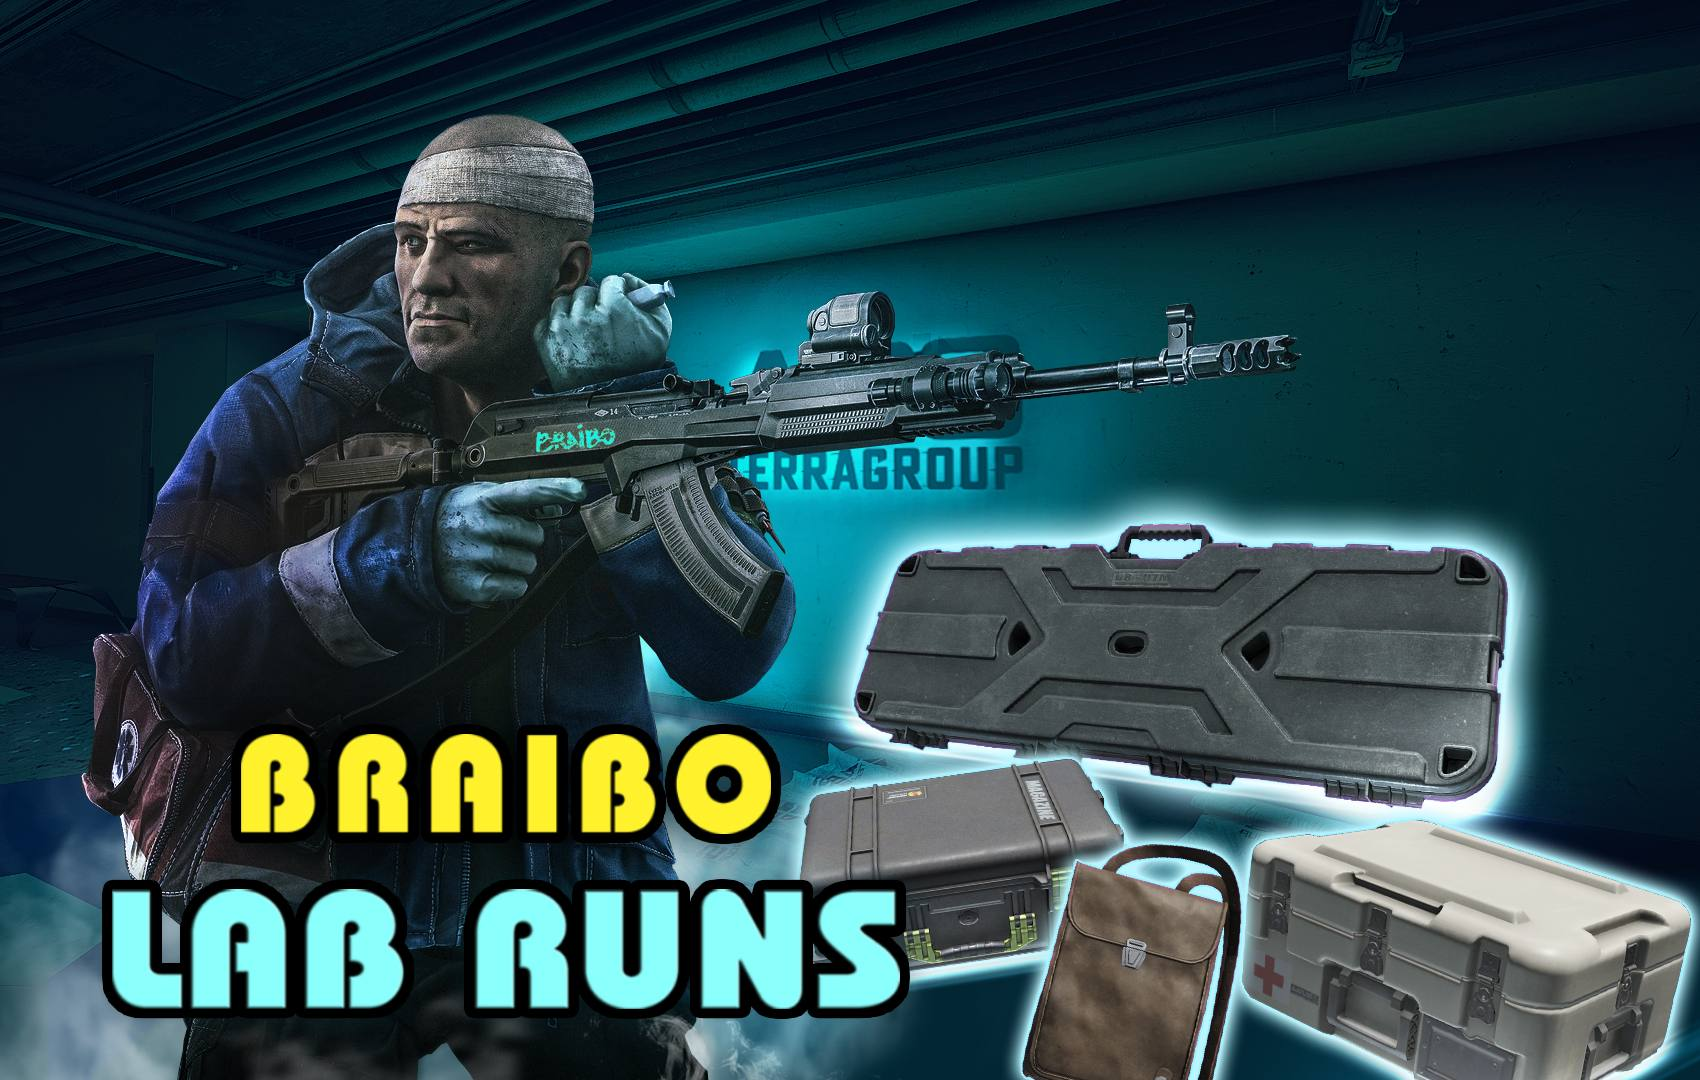 ✅ ((( LAB RUN ))) ⭐ 5mil - 25mil❤️BEST CARRY ⭐ WEAPON + GRENADE + MAGS + DOCS ✅ STREAM